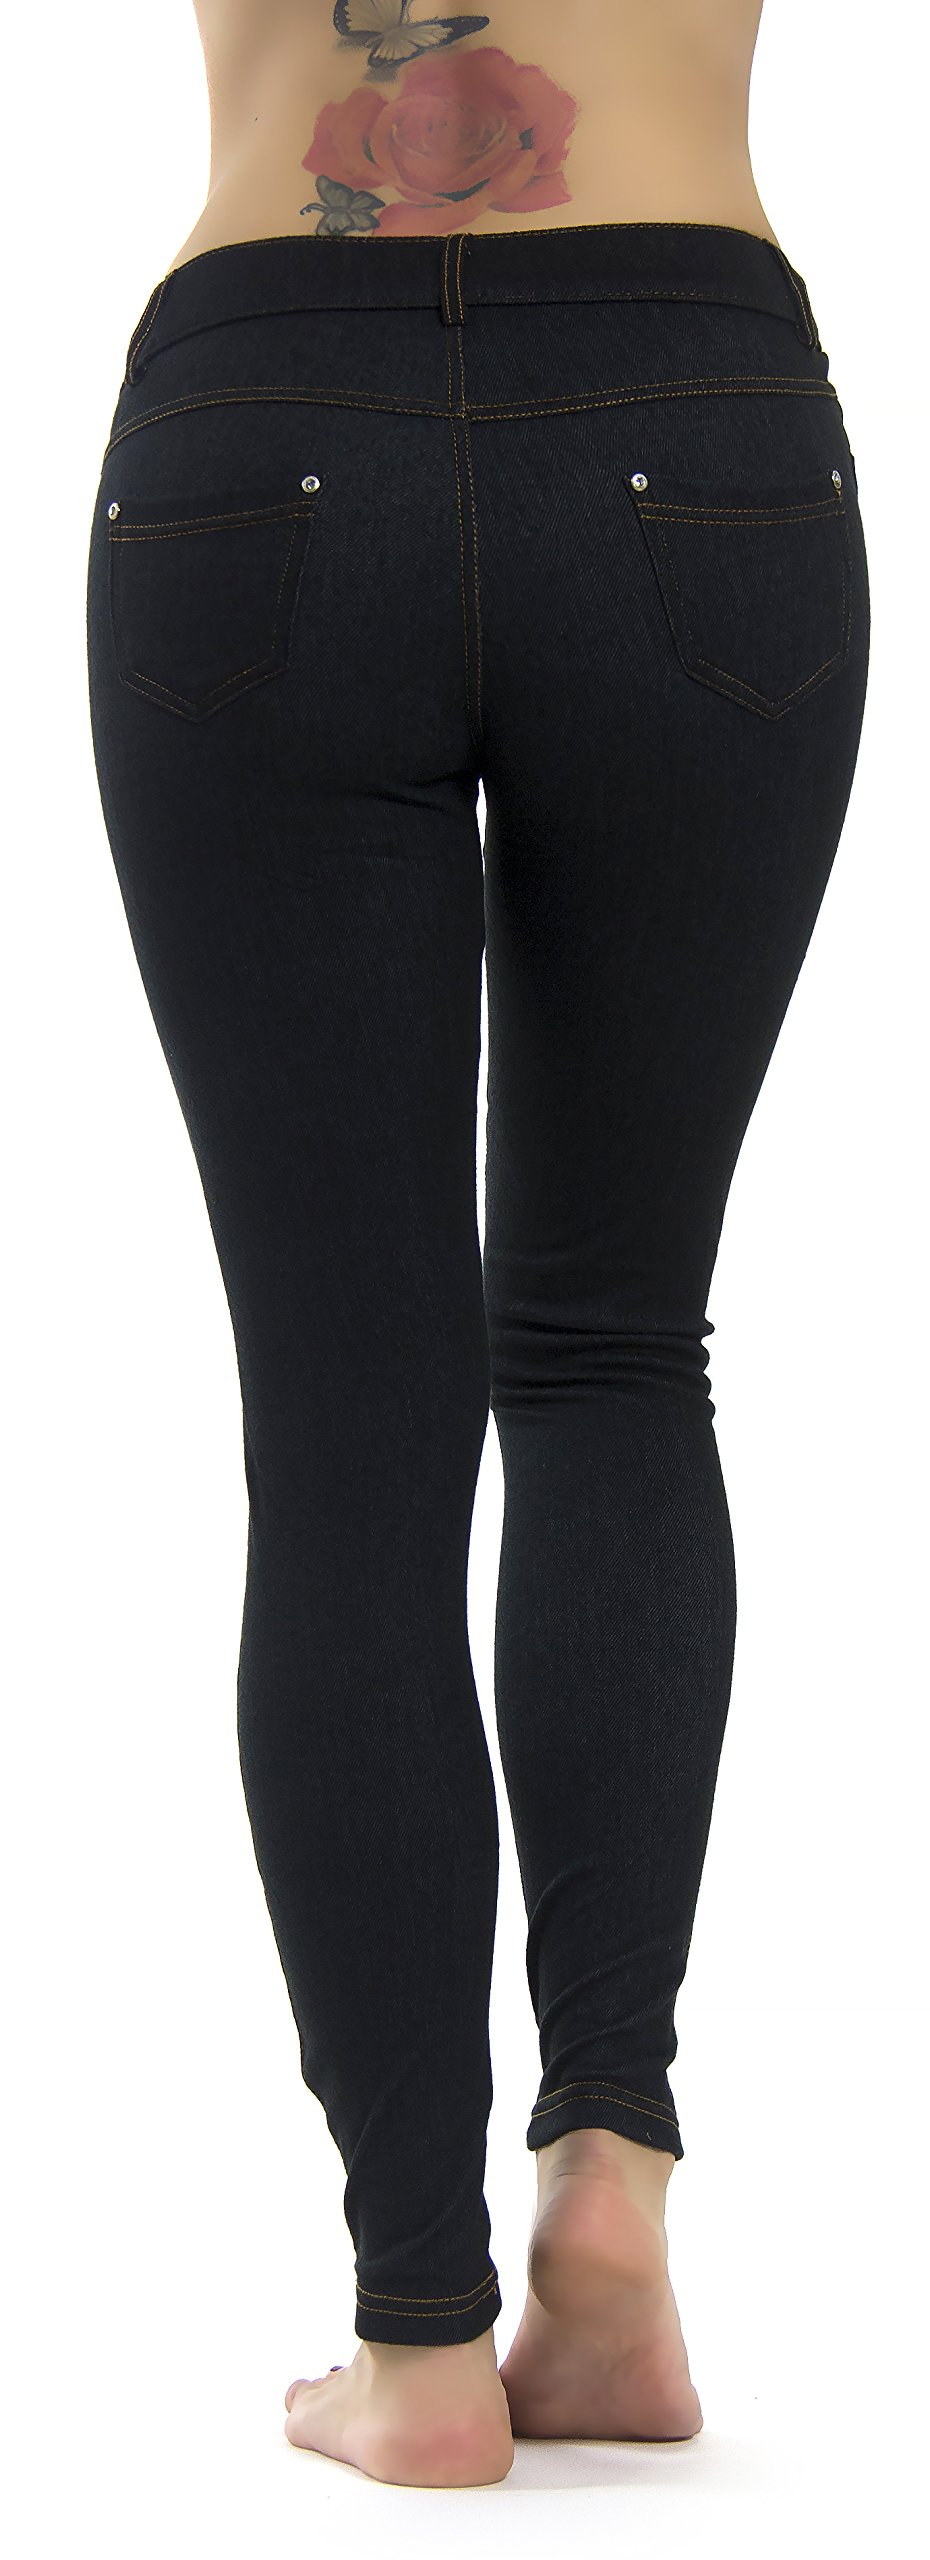 Prolific Health Women's Jean Look Jeggings Tights Slimming Many Colors Spandex Leggings Pants S-XXXL (Large/X-Large, Black Denim) by Prolific Health (Image #4)